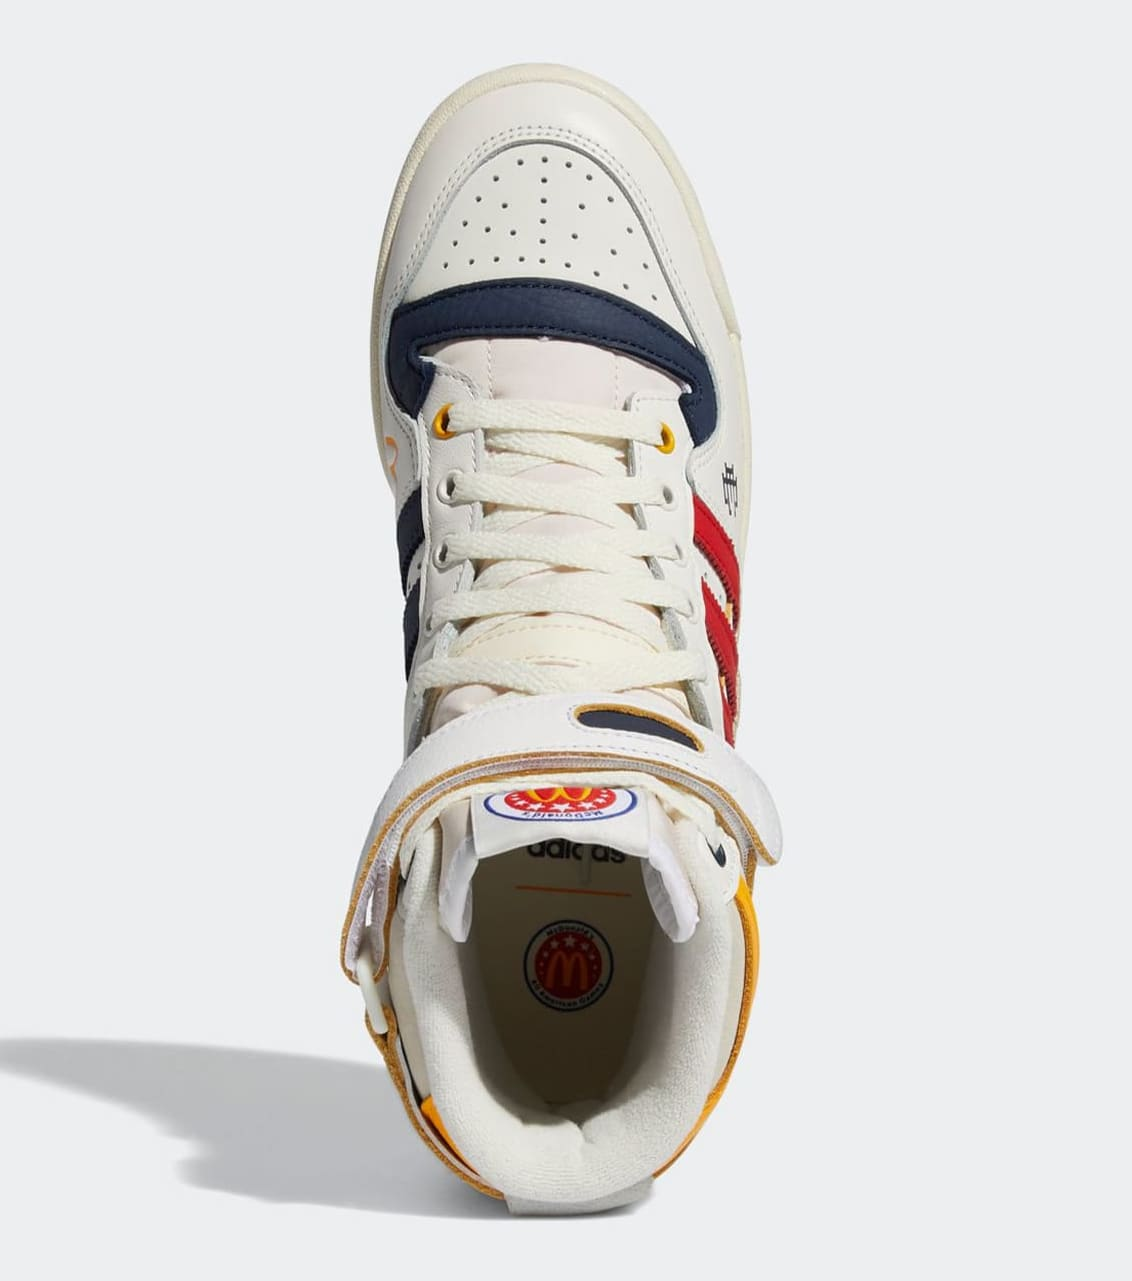 Eric Emanuel x Adidas Forum Hi 'McDonald's All-American' H02575 Top